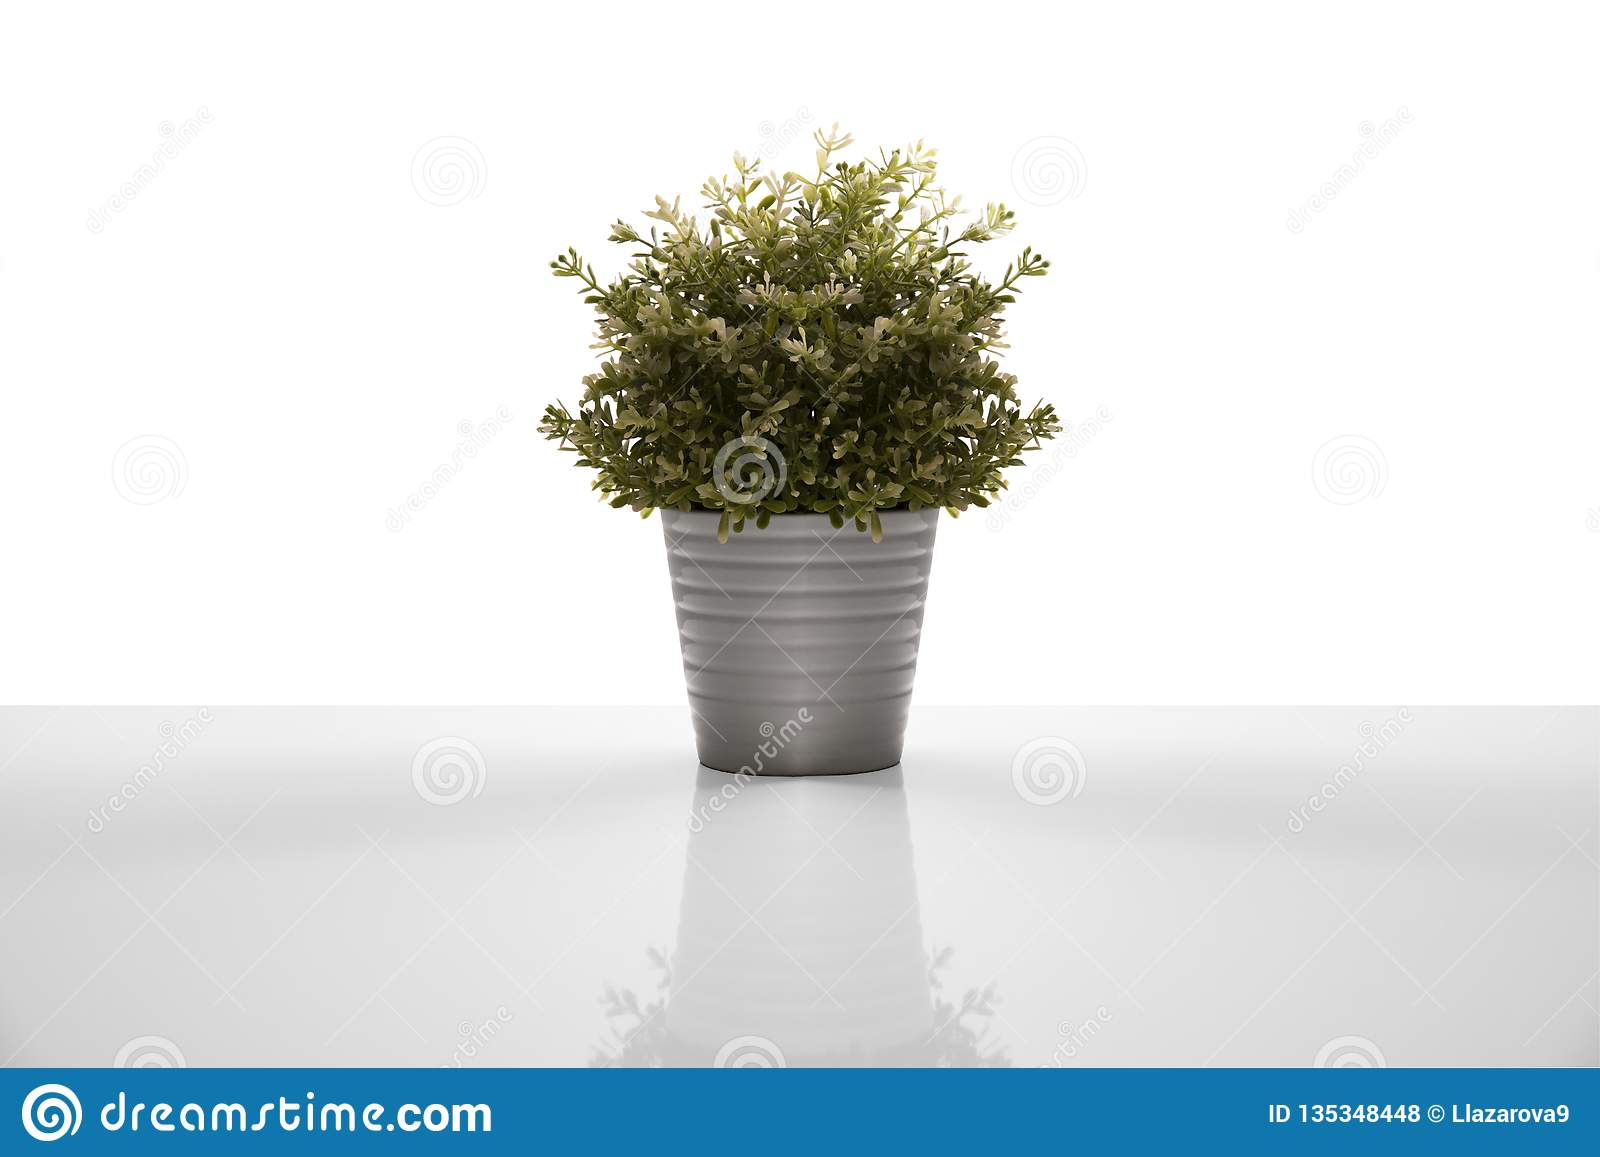 Decorative flower in flowerpot. Isolated on white background